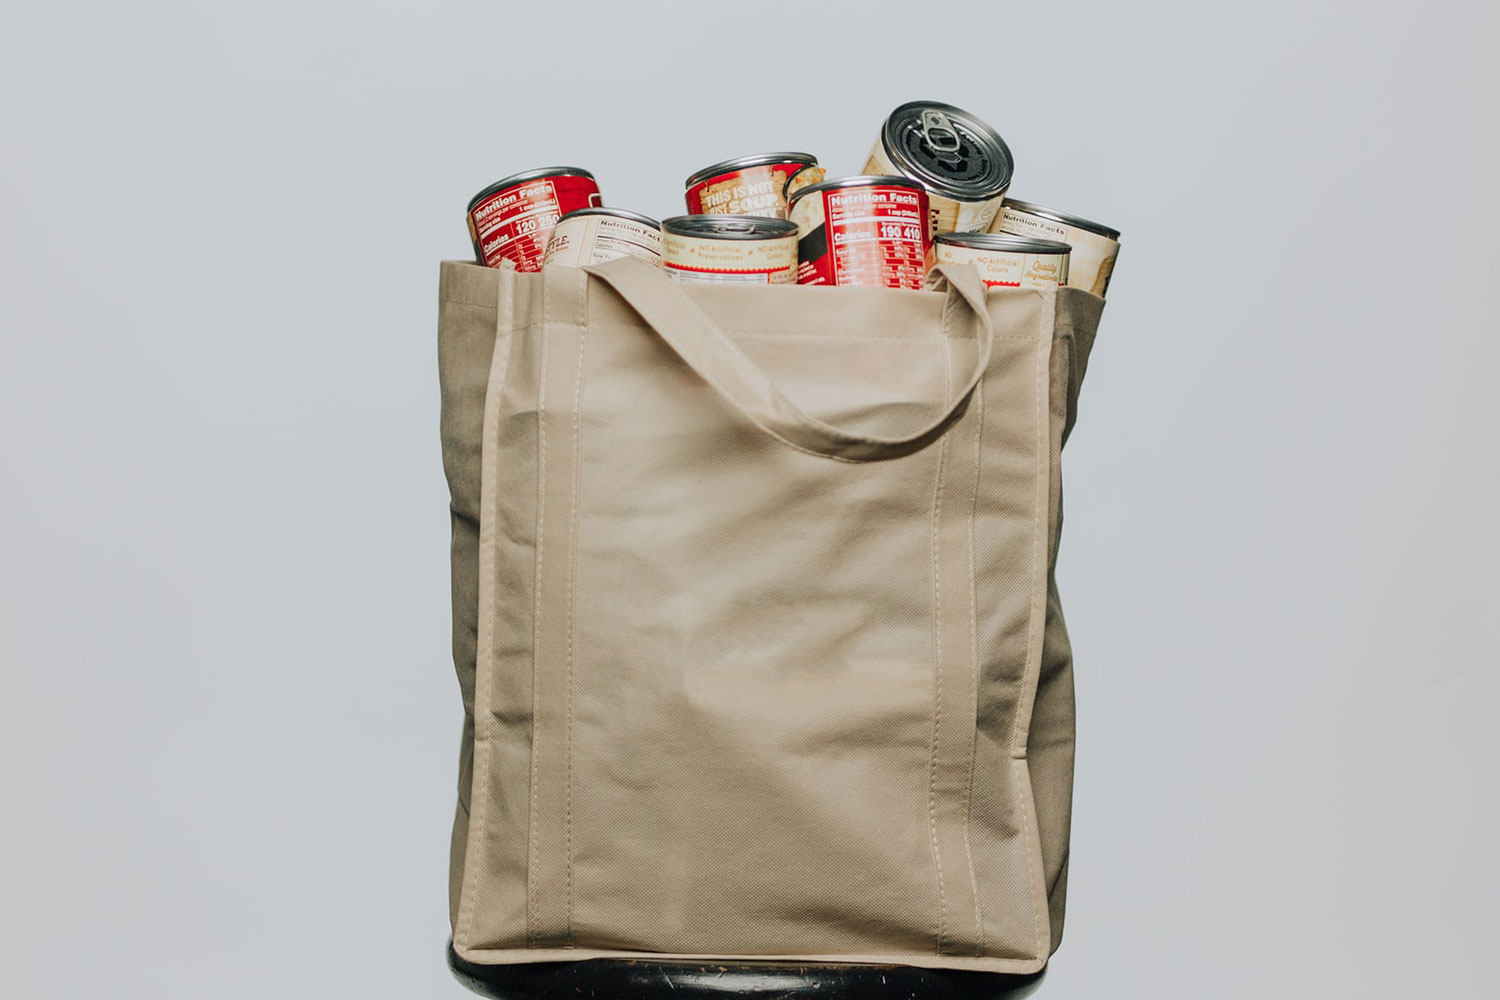 A Bag with Canned Food